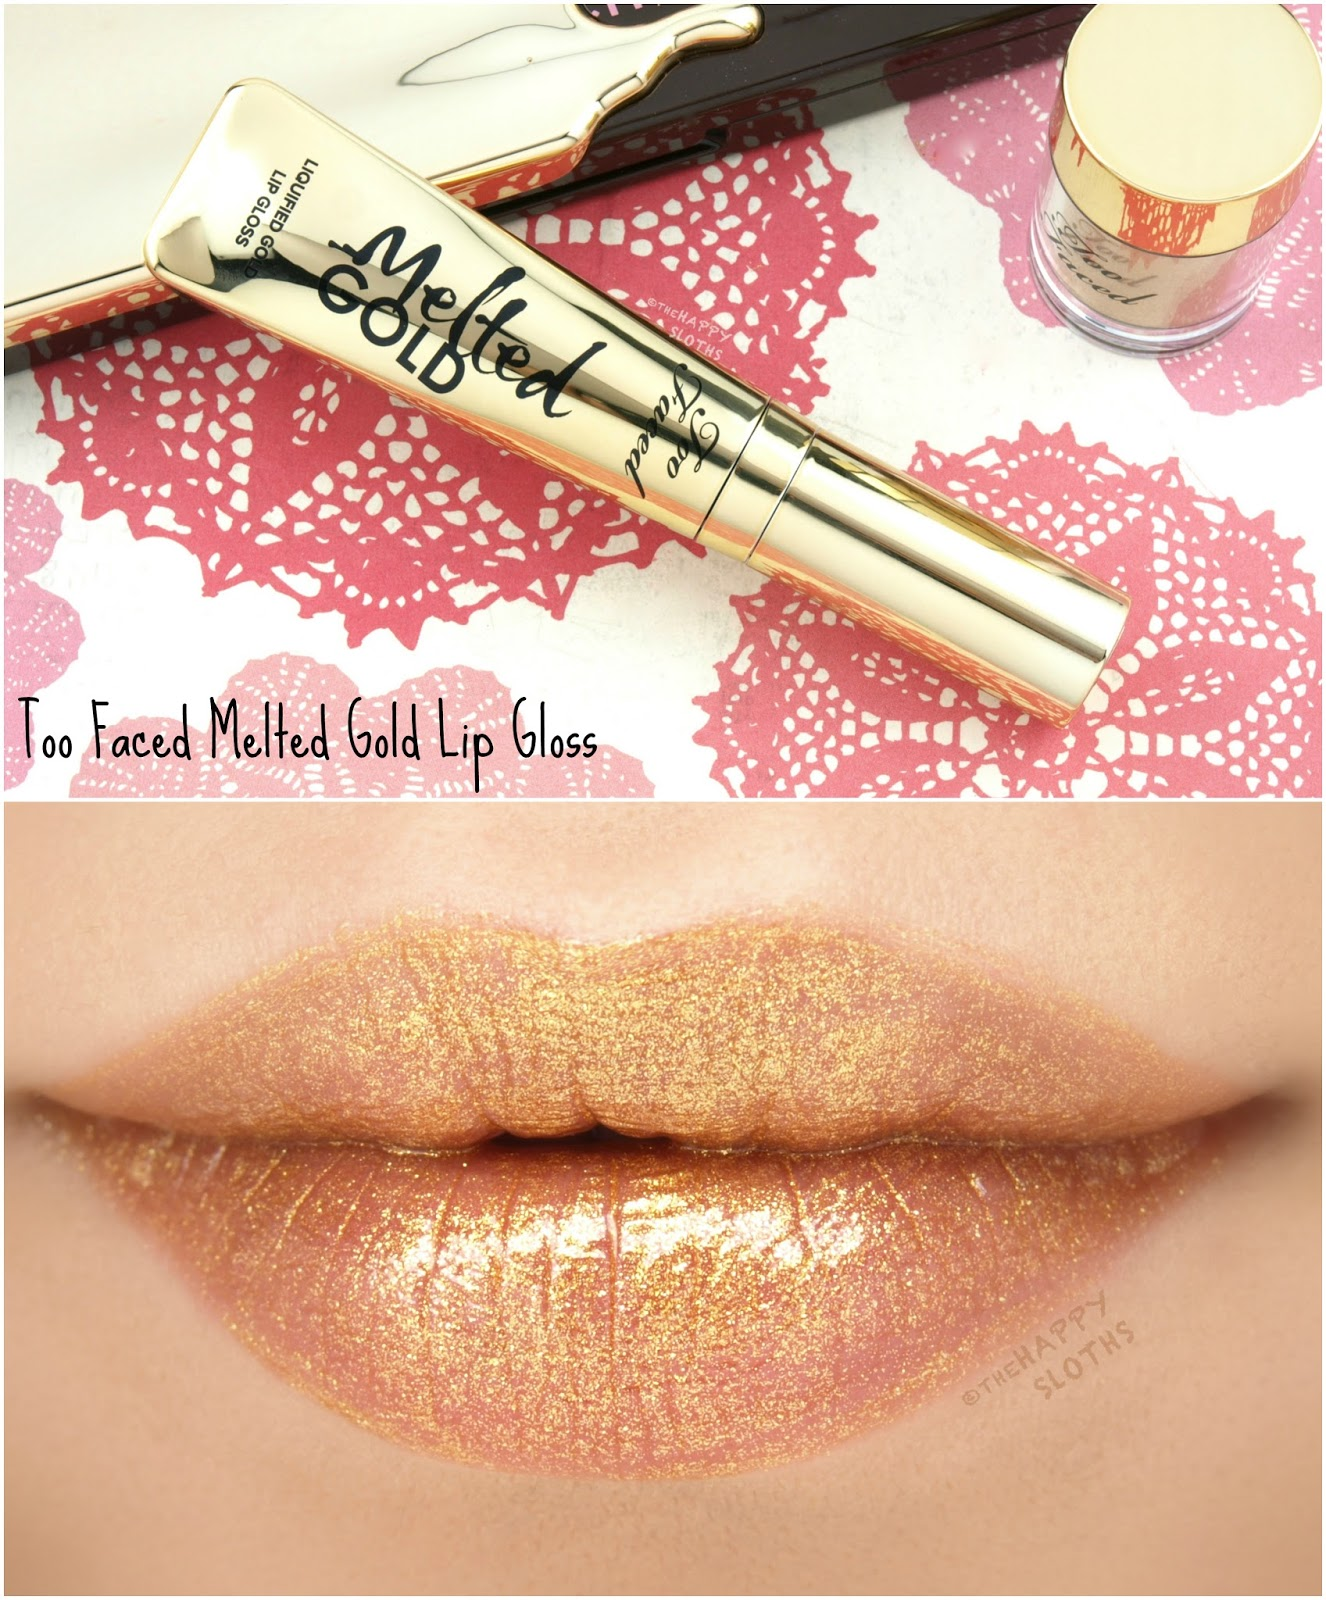 Too Faced Melted Gold Lip Gloss: Review and Swatches